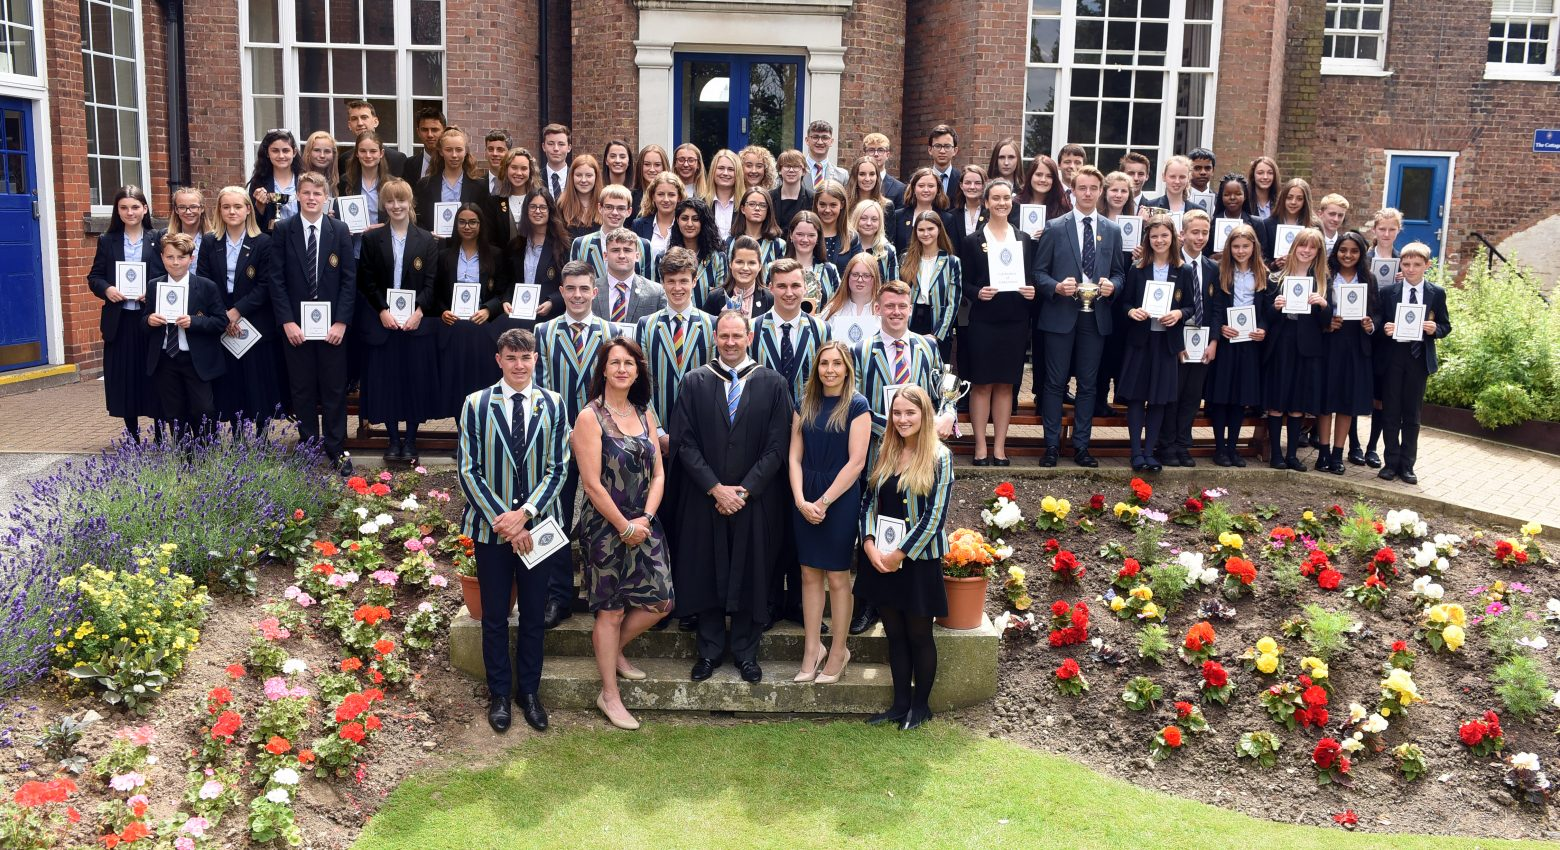 Wisbech Grammar School Senior Speech Day